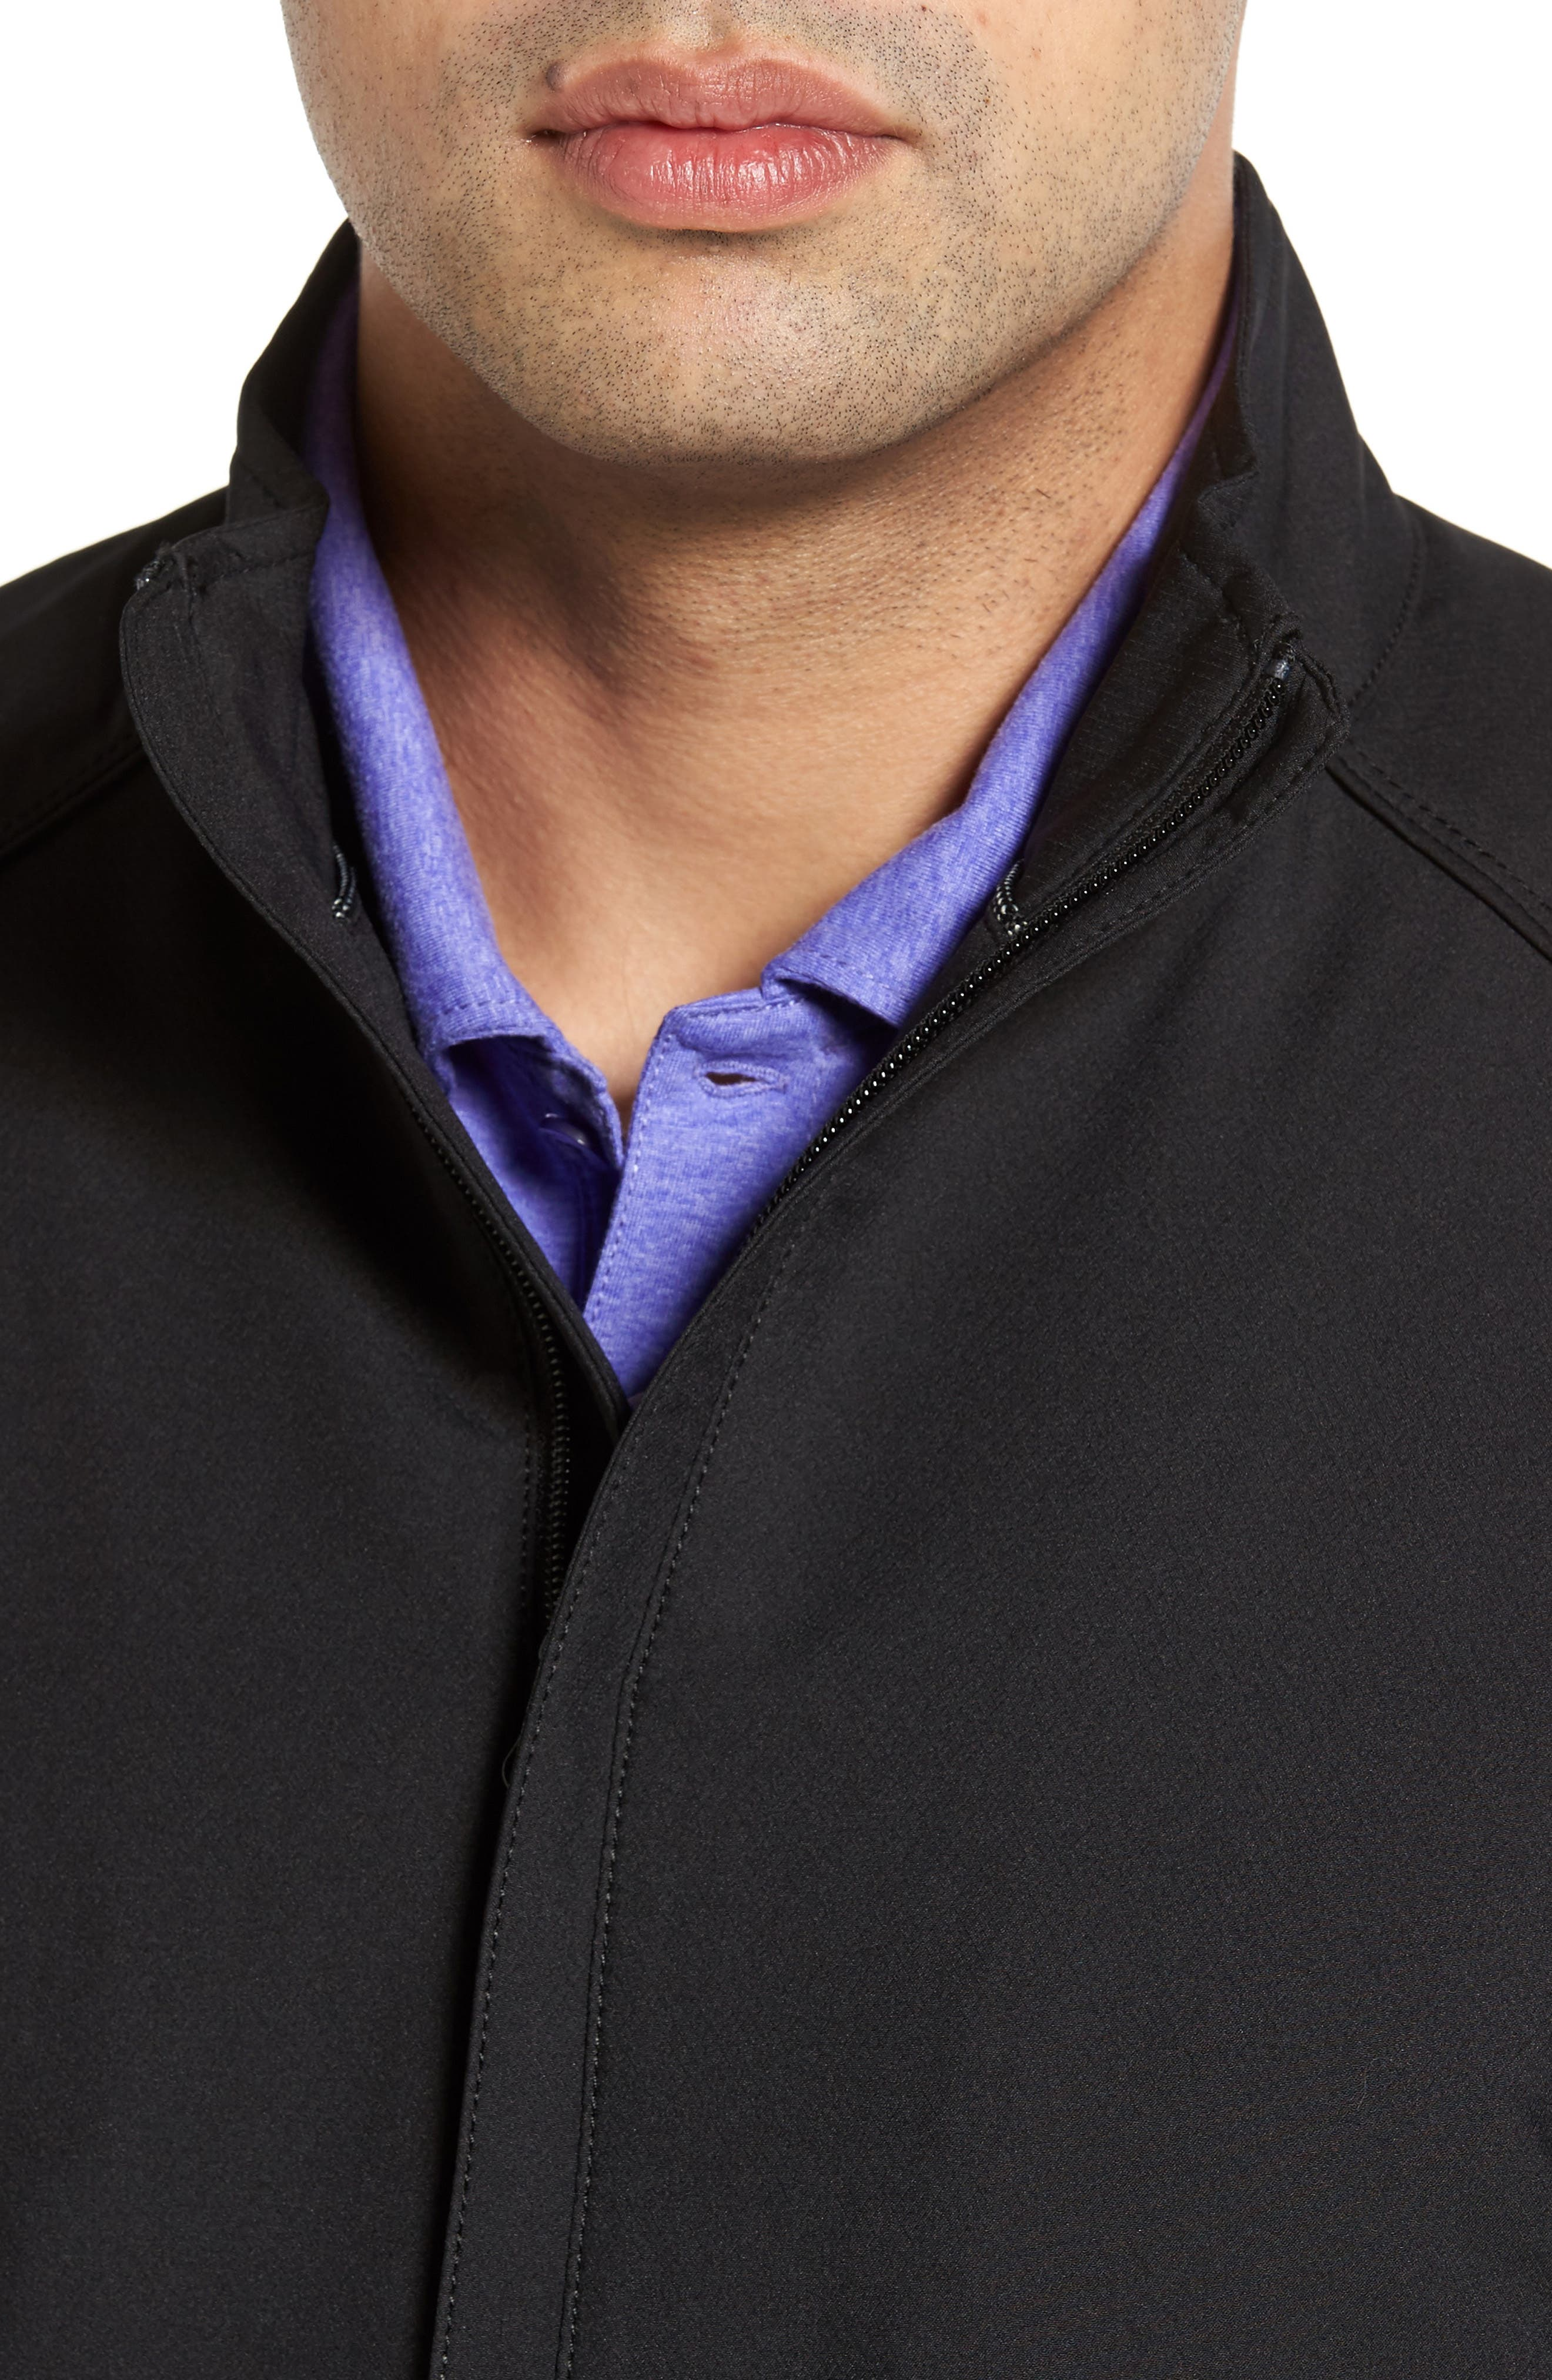 'Blakely' WeatherTec<sup>®</sup> Wind & Water Resistant Full Zip Jacket,                             Alternate thumbnail 5, color,                             BLACK